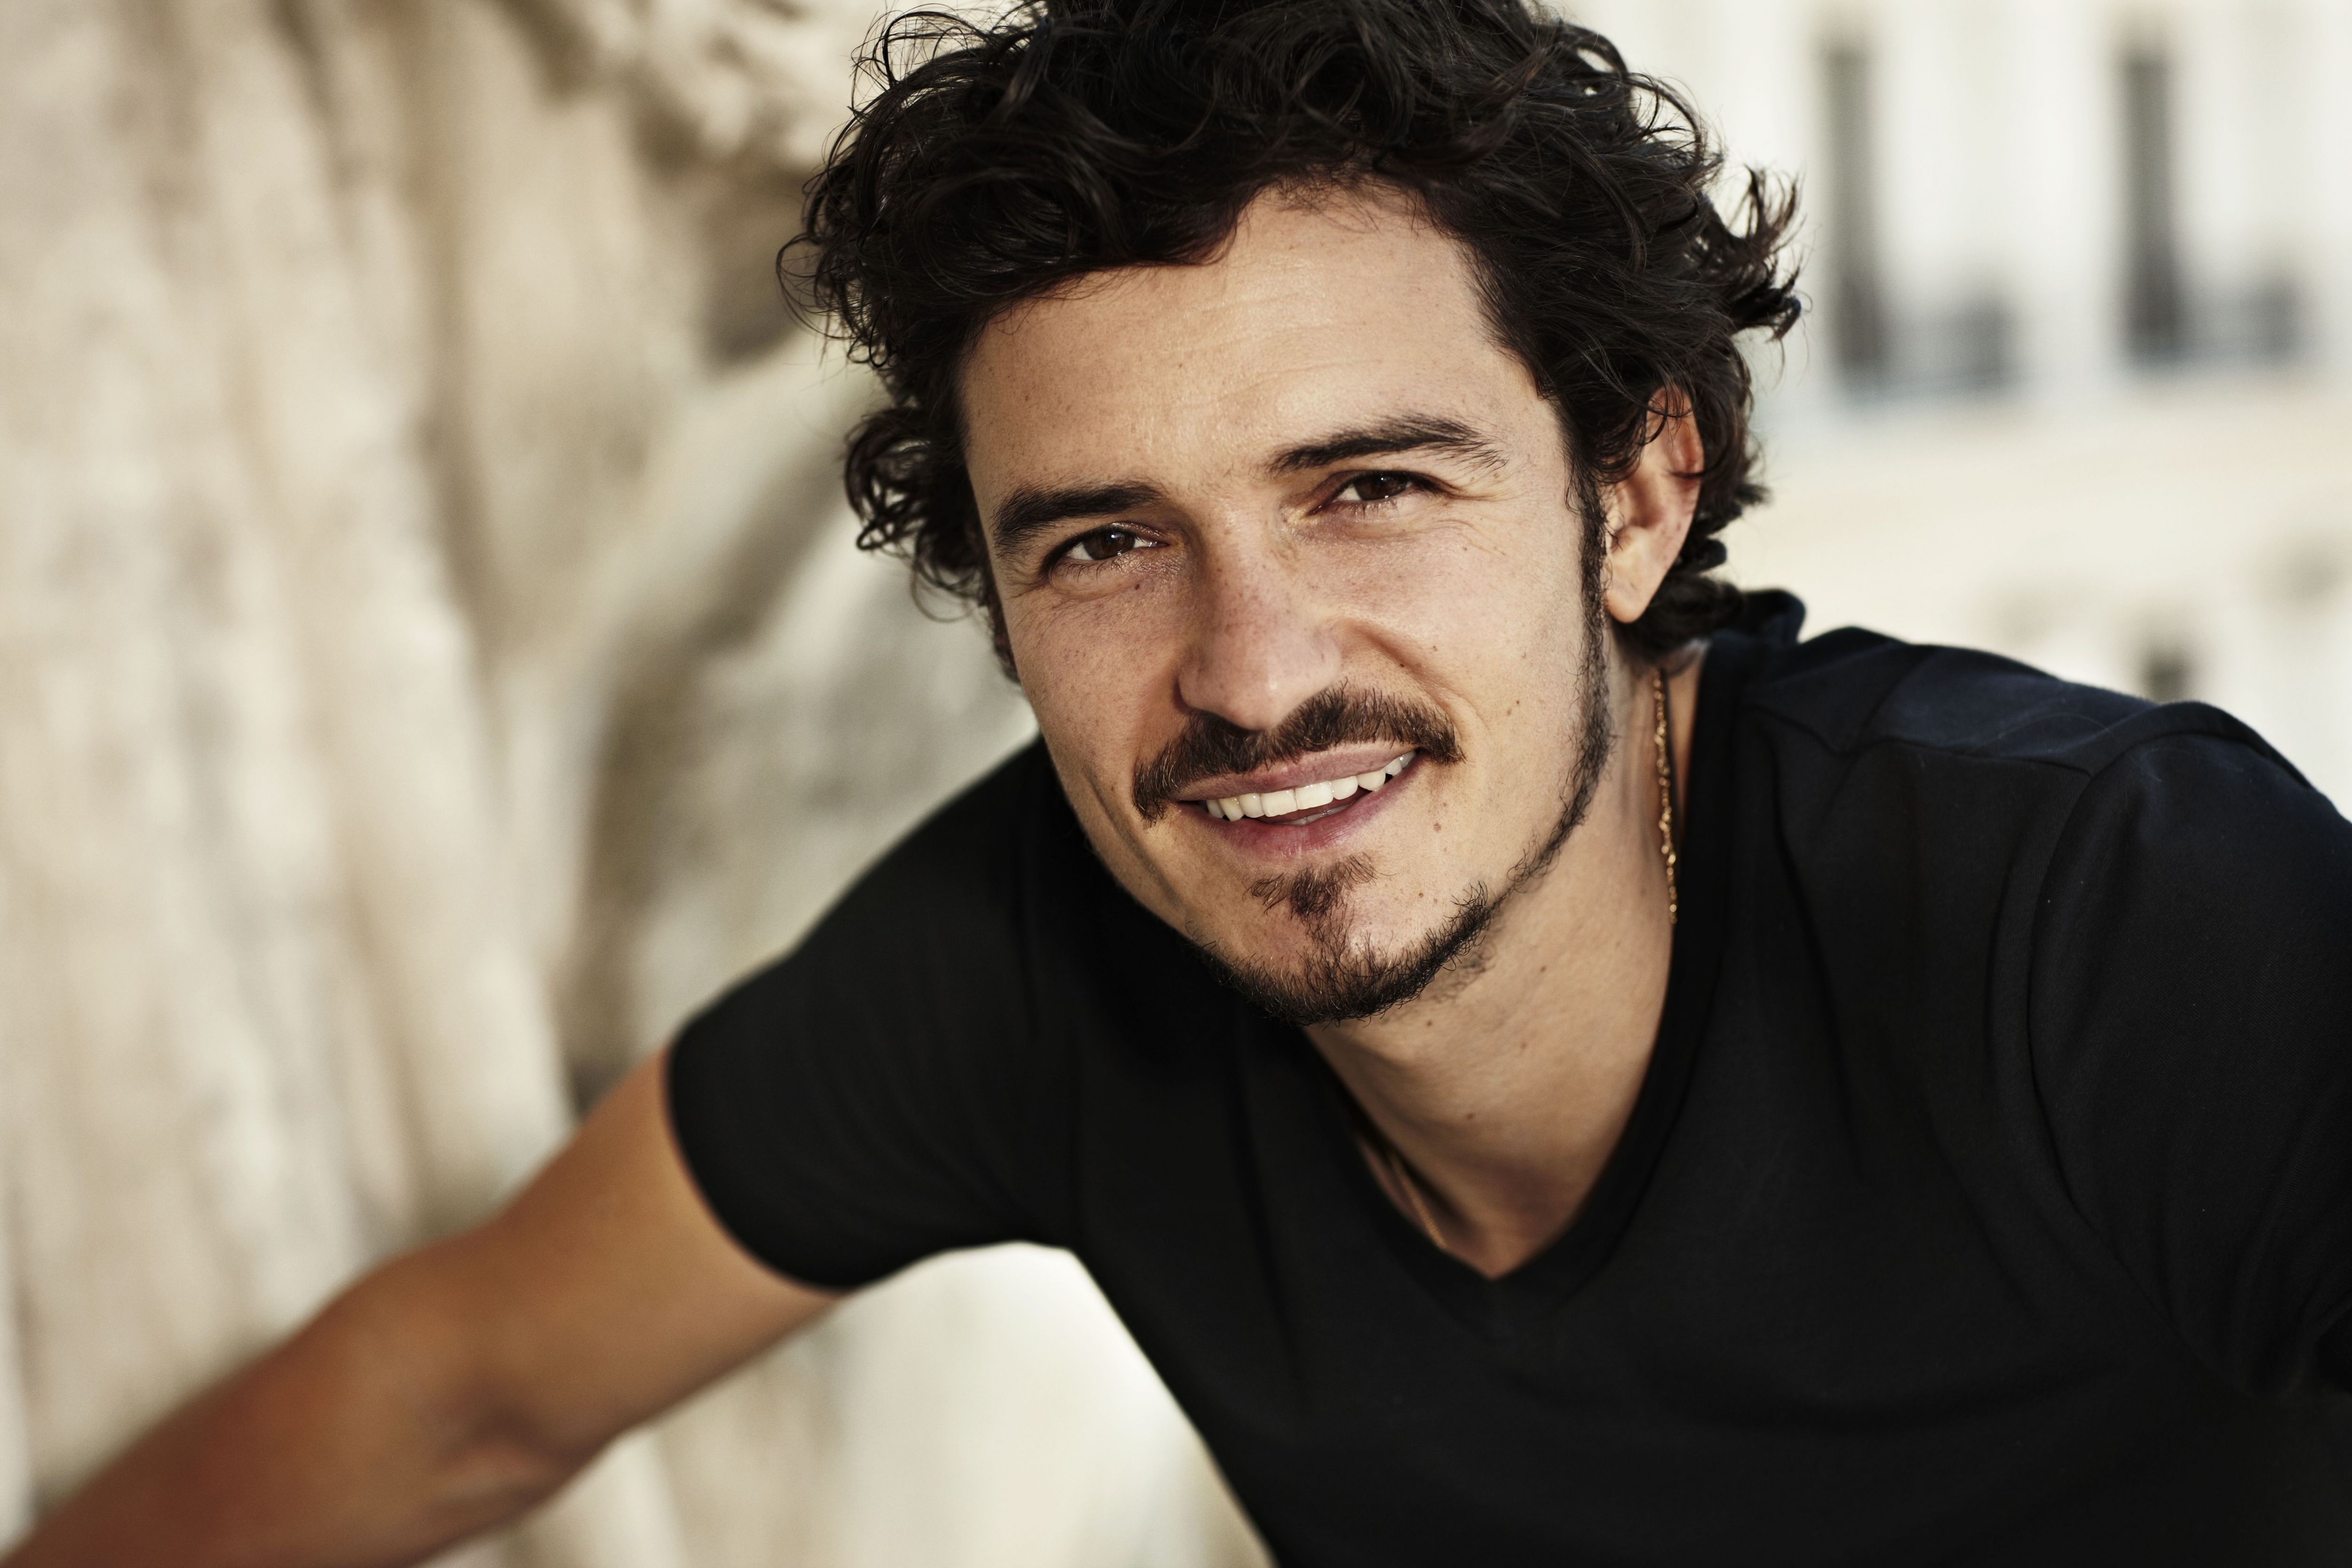 Orlando Bloom victory dances like no oneu0026#39;s watching following alleged fight with Justin Bieber u0026#39;over Miranda Kerru0026#39;   The Independent